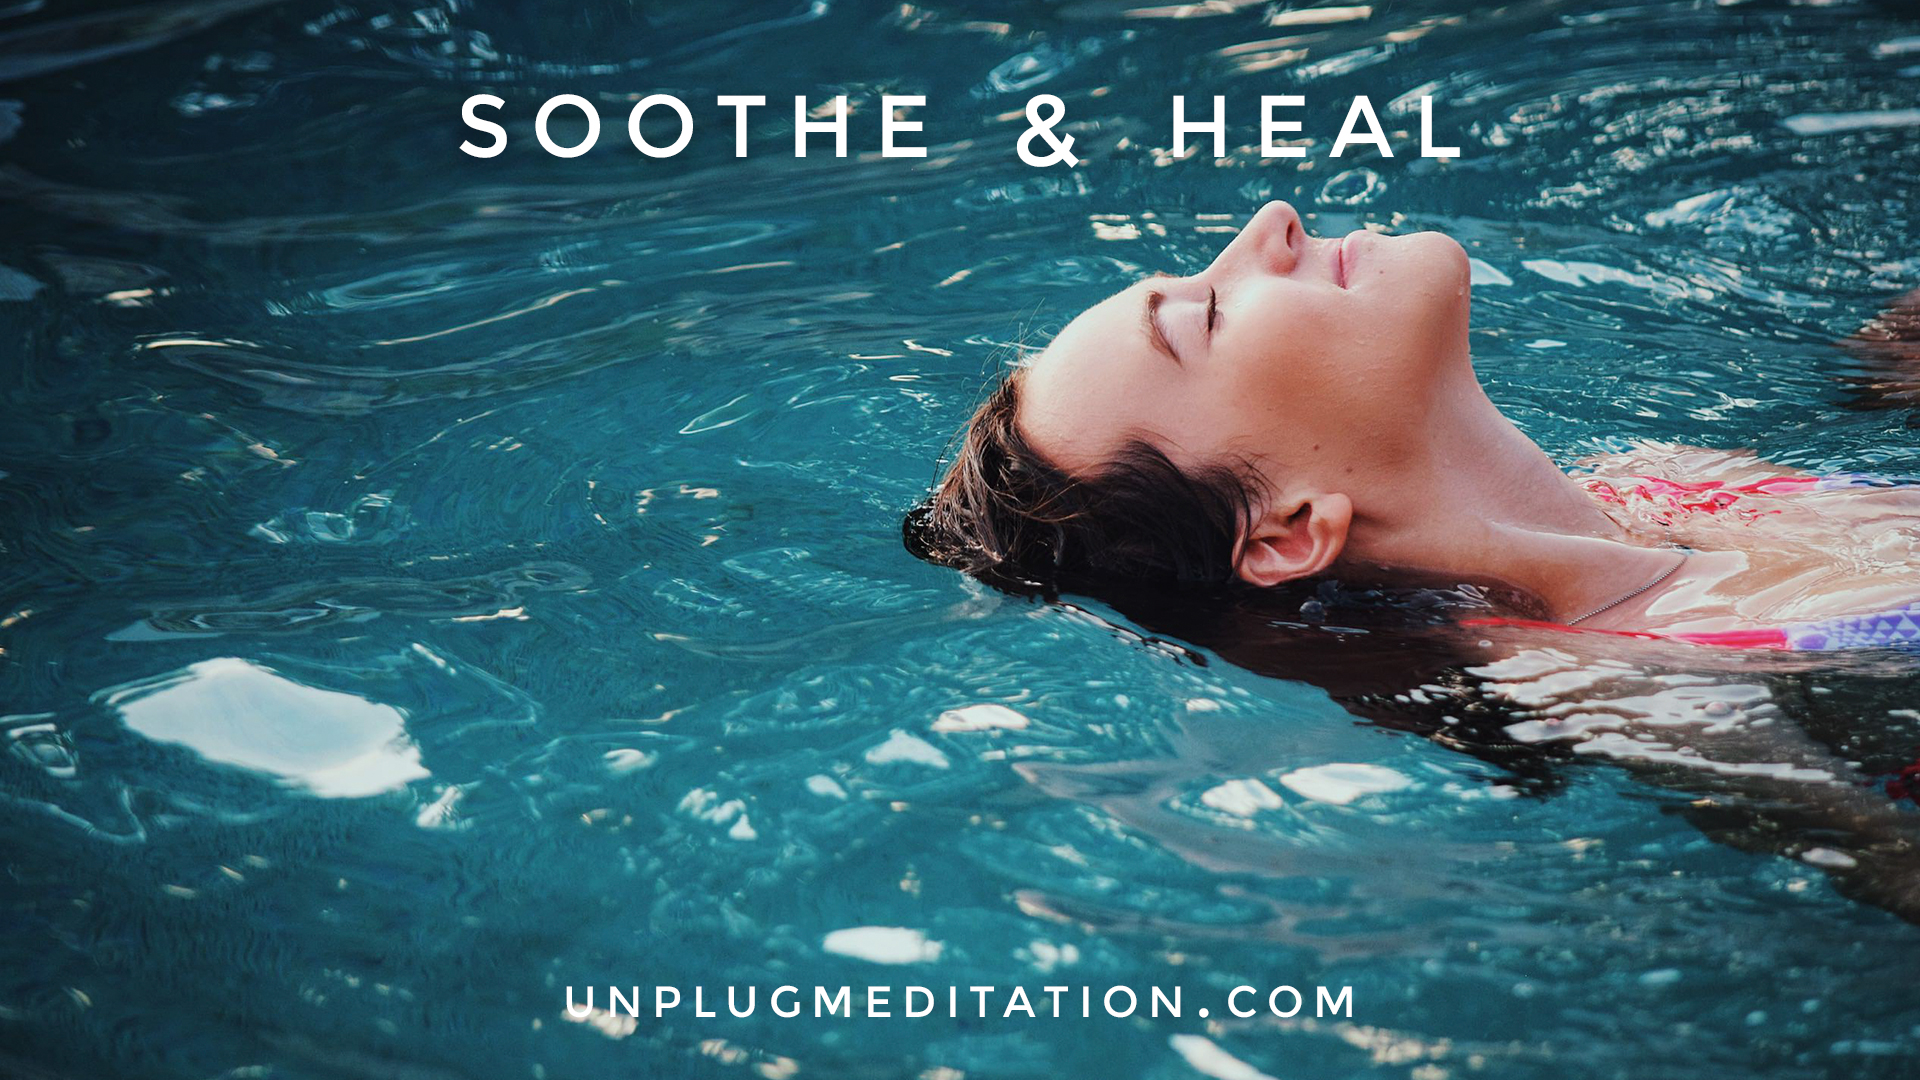 Unplug-Meditation-VHX-Covers-Artwork_Soothe-and-Heal.jpg